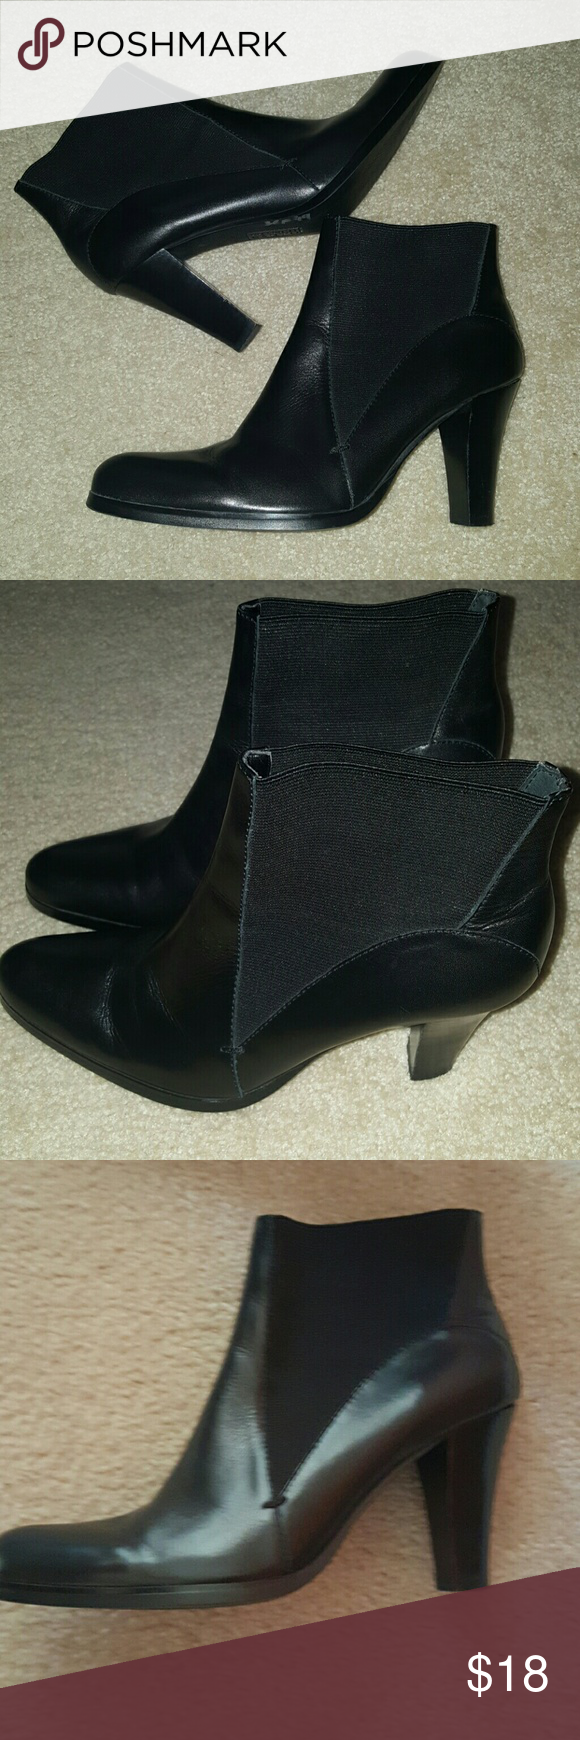 Franco Sarto Short Boots size 7.5 Short black Franco Sarto booties, never worn like new. Franco Sarto Shoes Ankle Boots & Booties